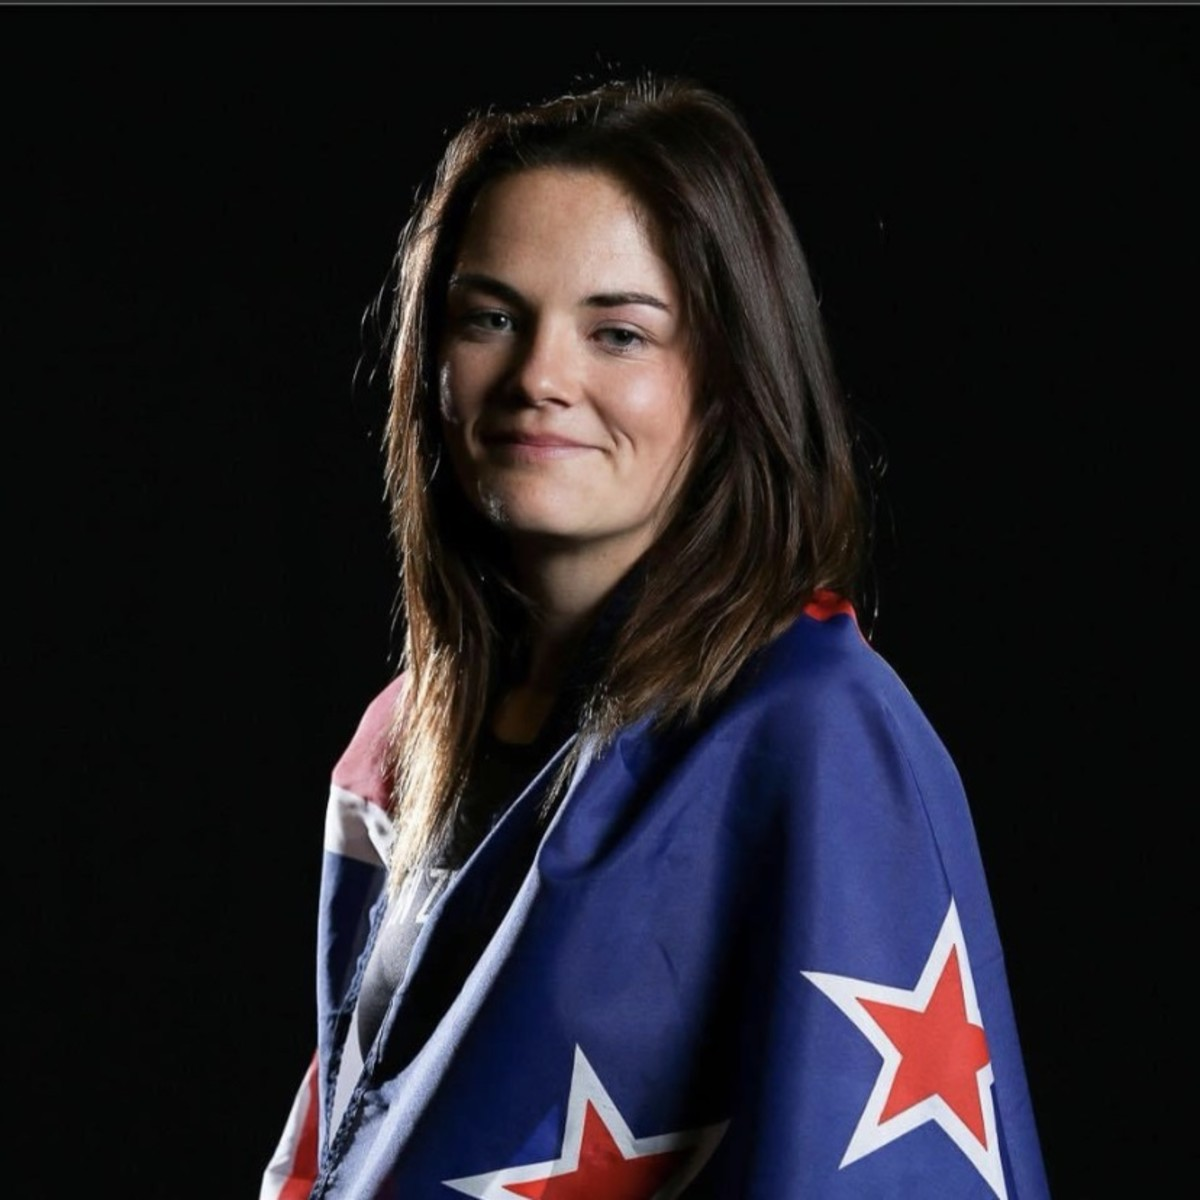 New Zealand Paralympic javelin thrower Holly Robinson, who is of Ngāi Tahu descent, won gold at the Tokyo Paralympics, which ran Aug. 24-Sept. 5, 2021. (Photo courtesy New Zealand Paralympics)